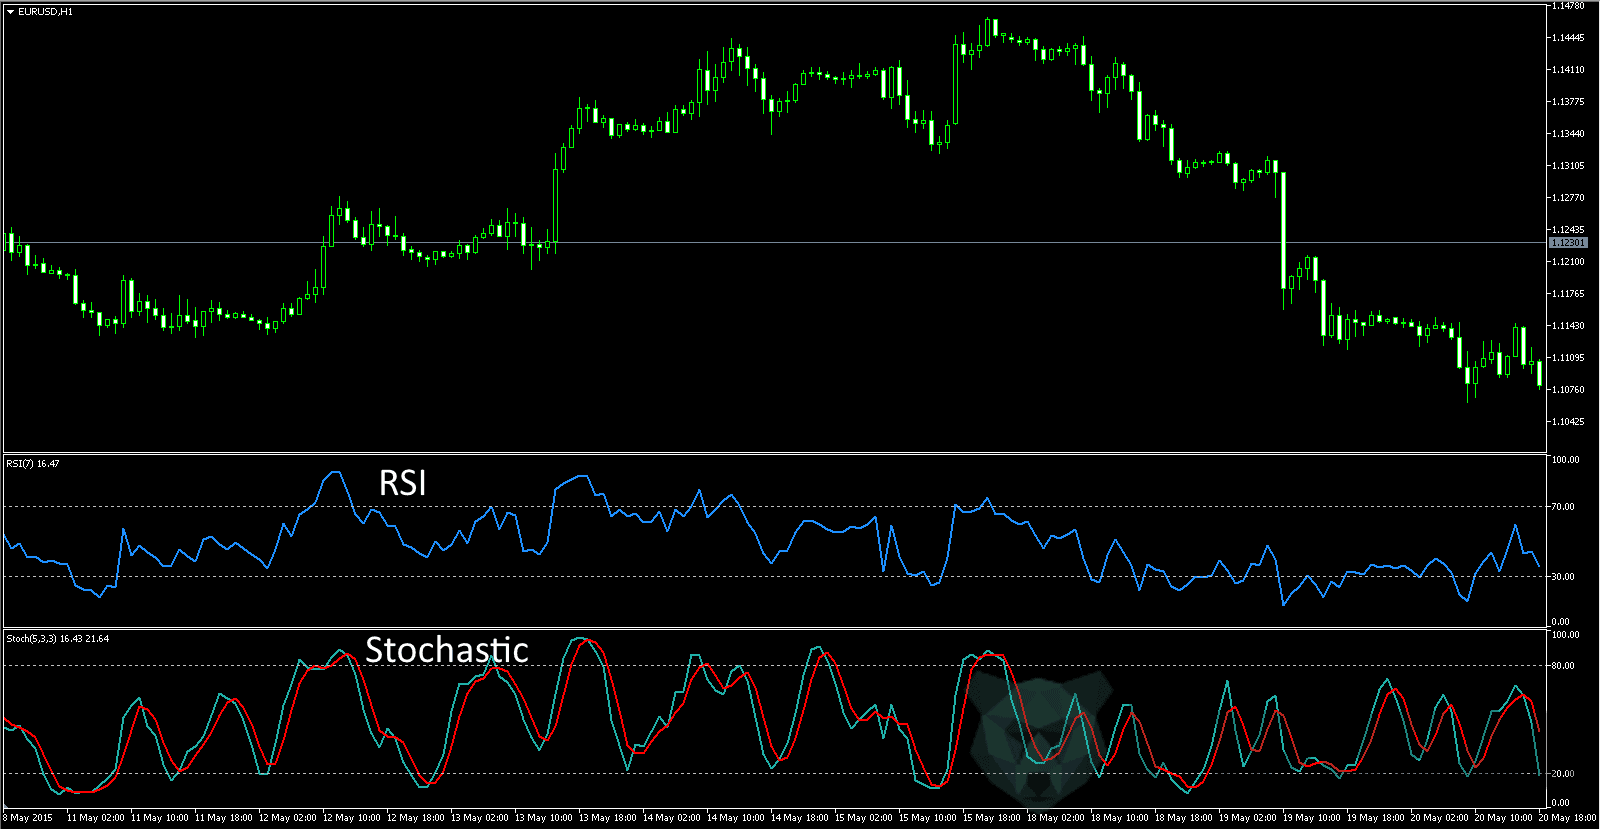 RSI and Stochastic